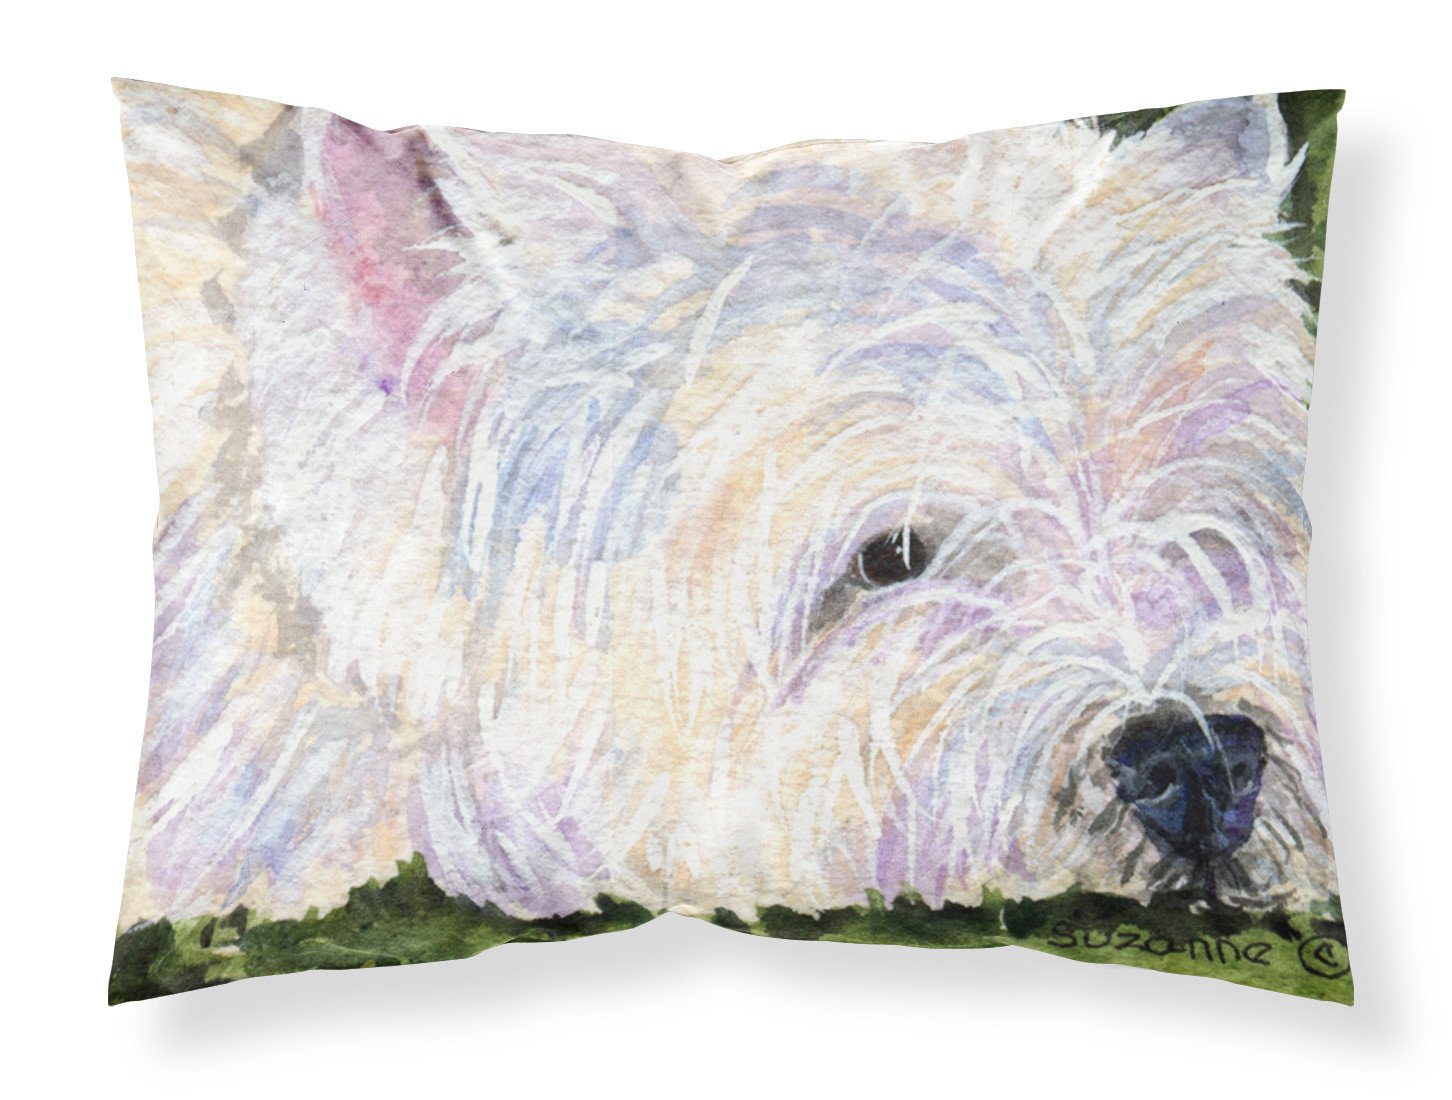 Westie Moisture wicking Fabric standard pillowcase by Caroline's Treasures